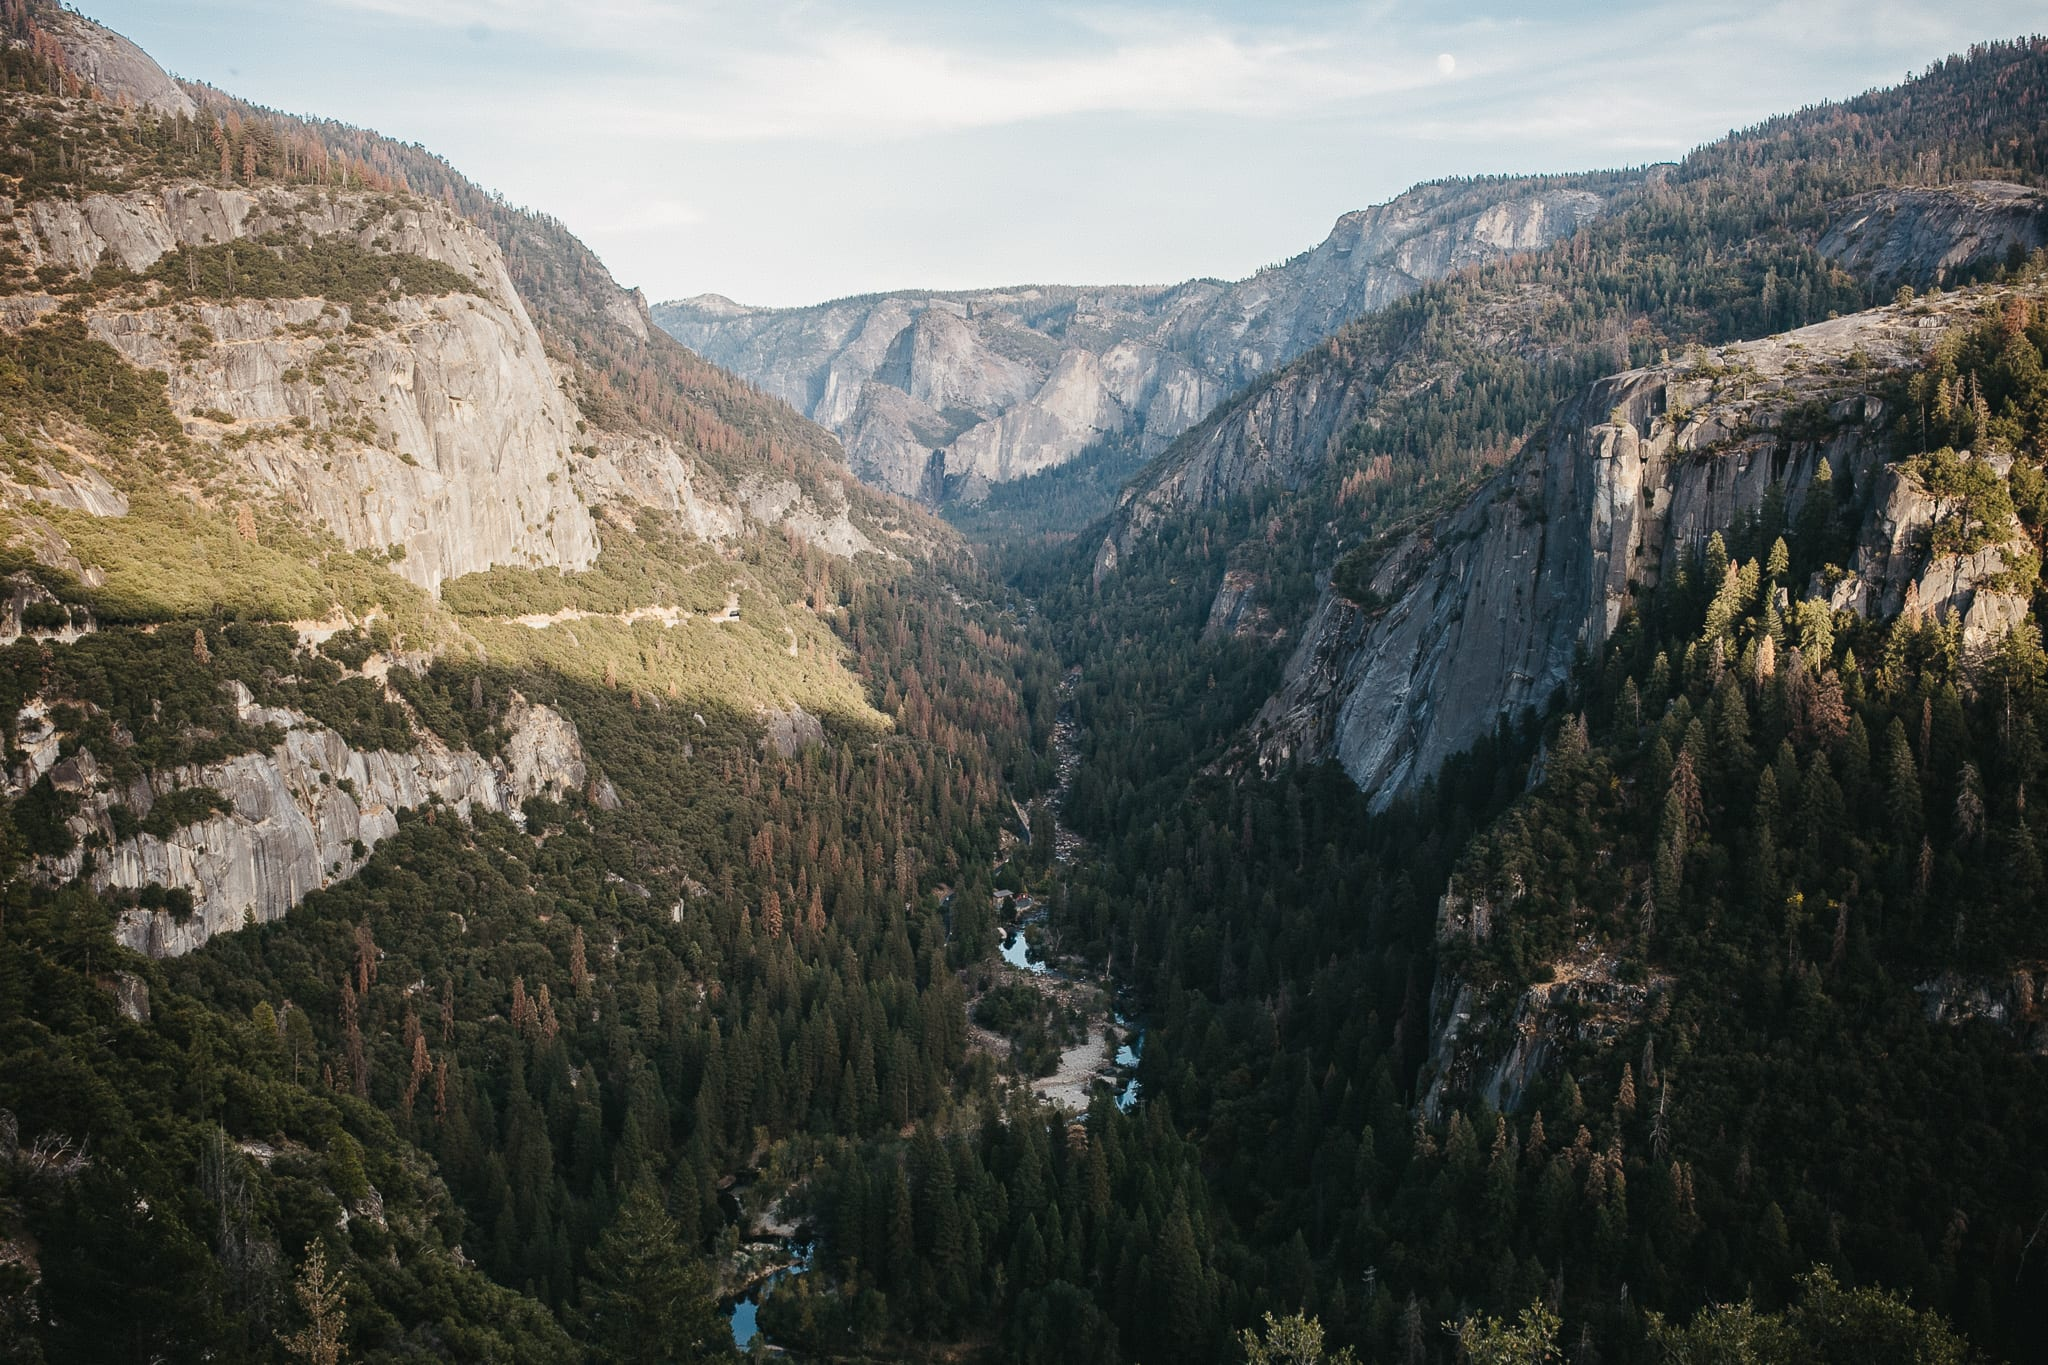 clouds-rest-yosemite-california-engagement-lifestyle-adventure-photographer-35